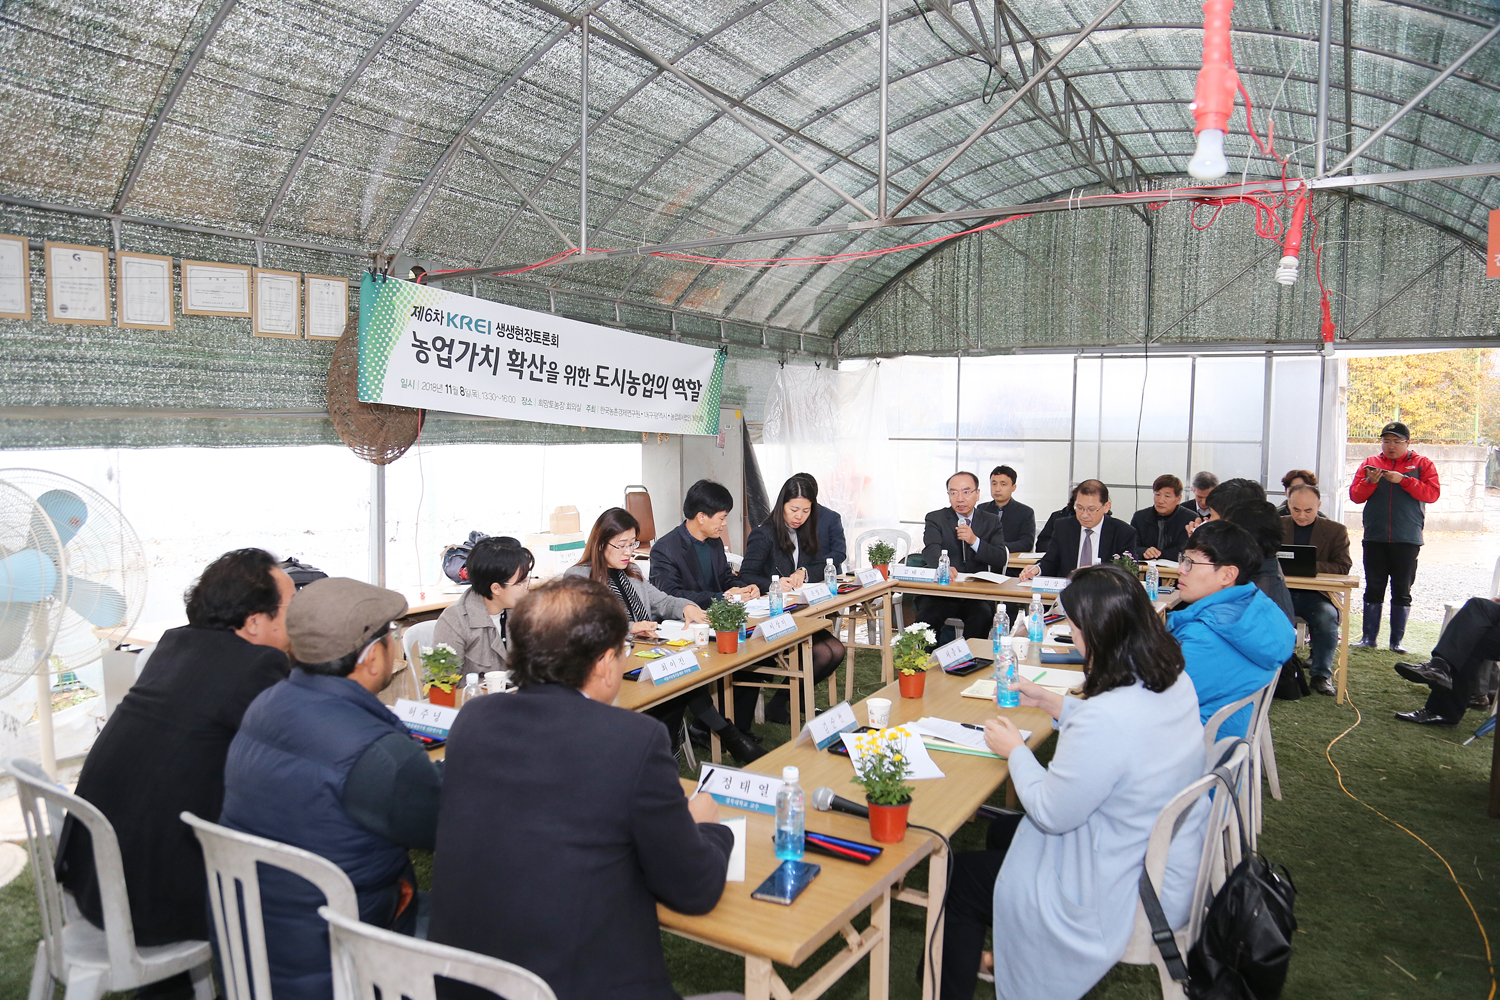 KREI Saengsaeng Field Forum Held on Role of Urban Farming for Expanding Value of Agriculture